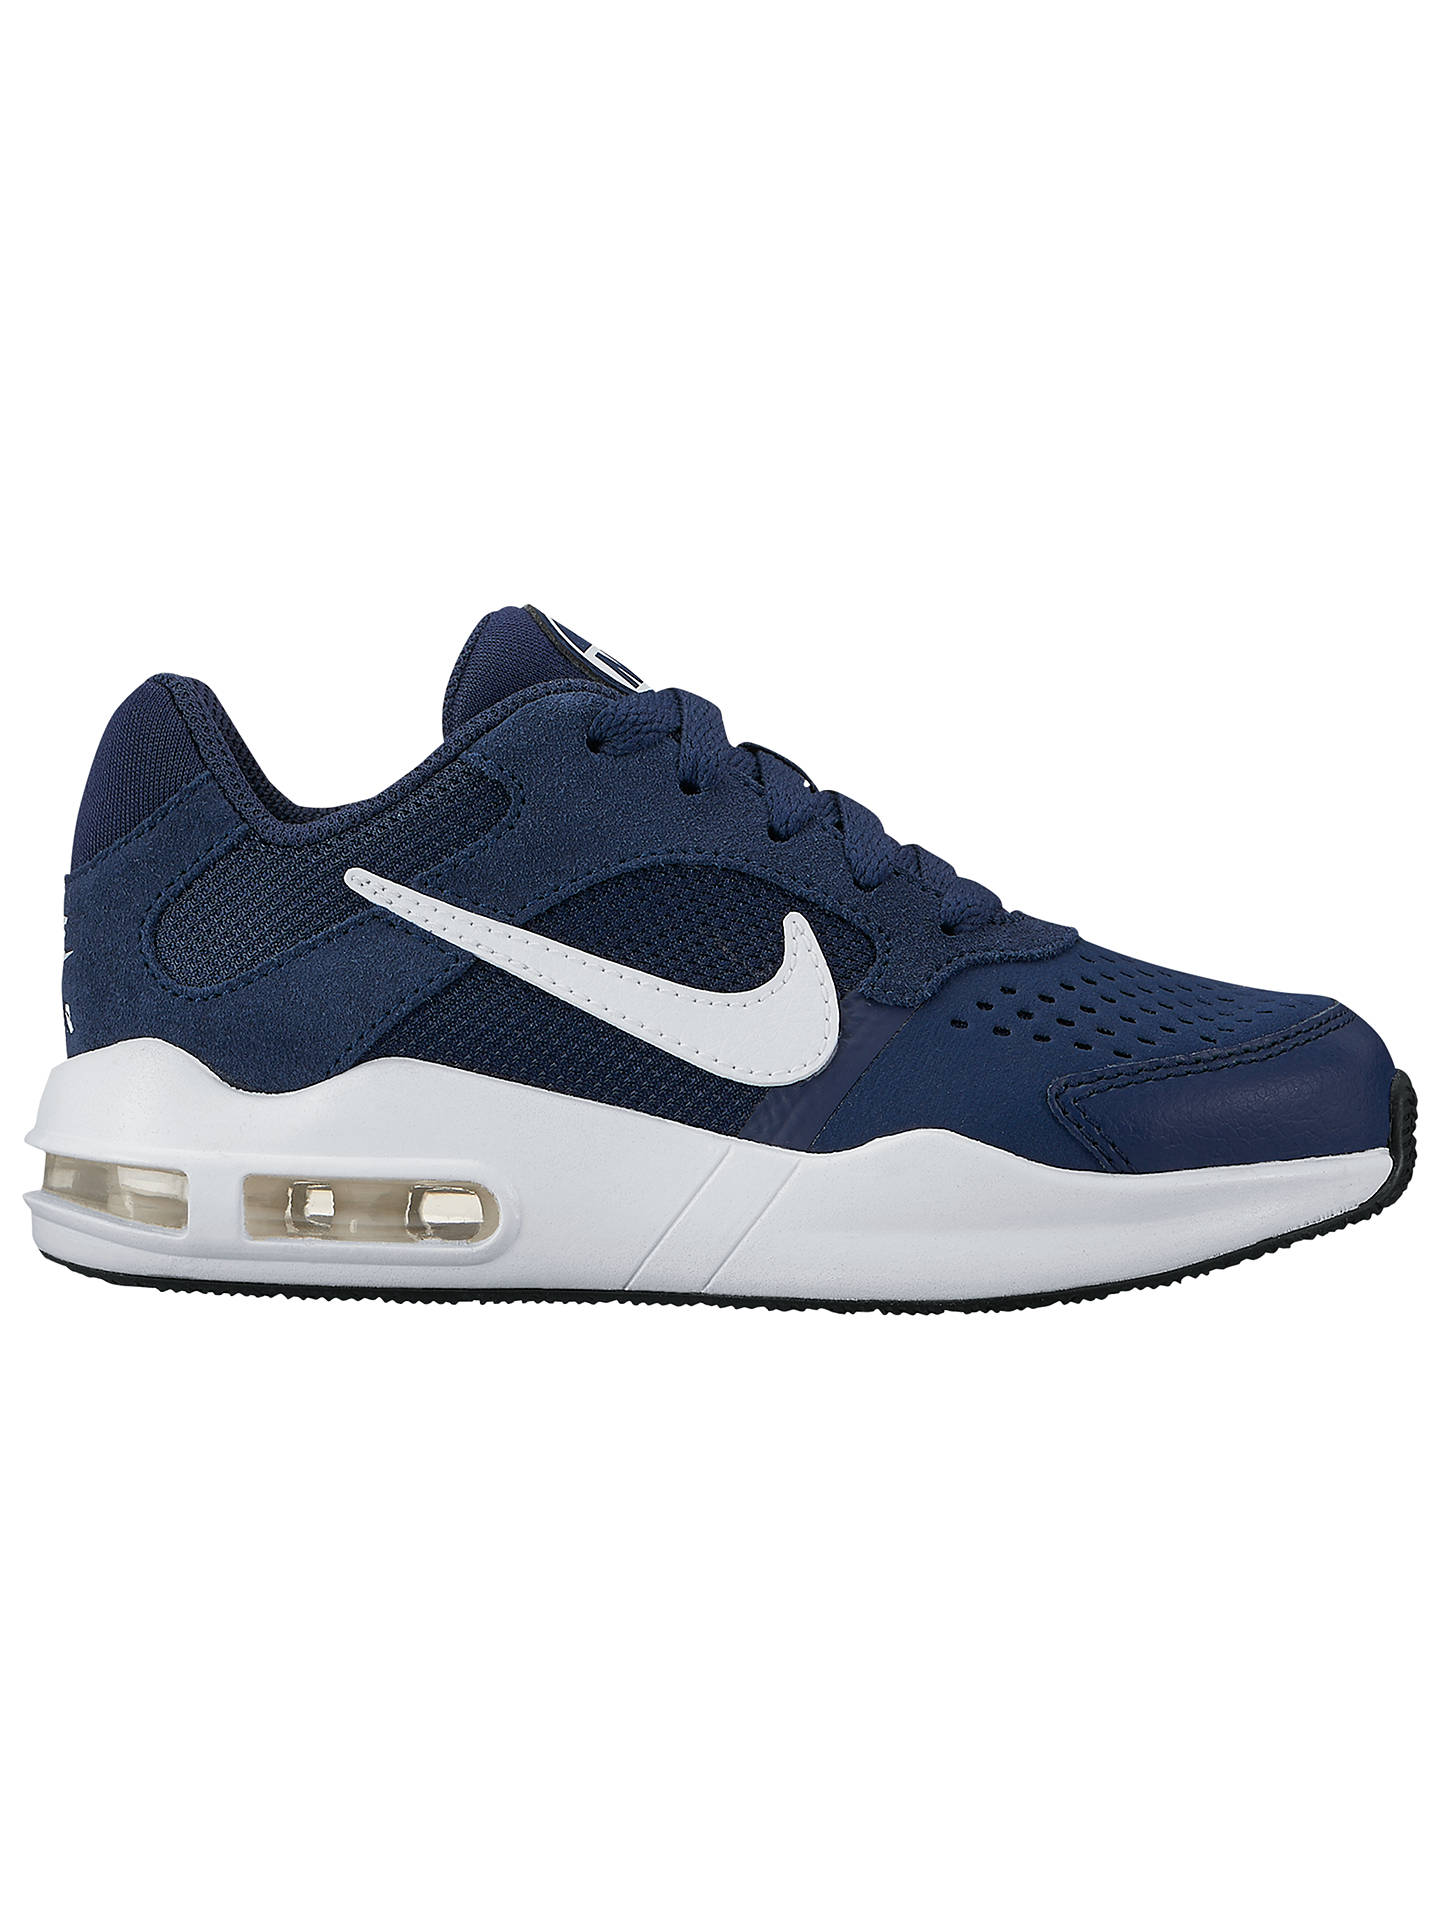 Anuncio promedio Disparates  Nike Children's Air Max Guile Trainers, Navy/White at John Lewis & Partners